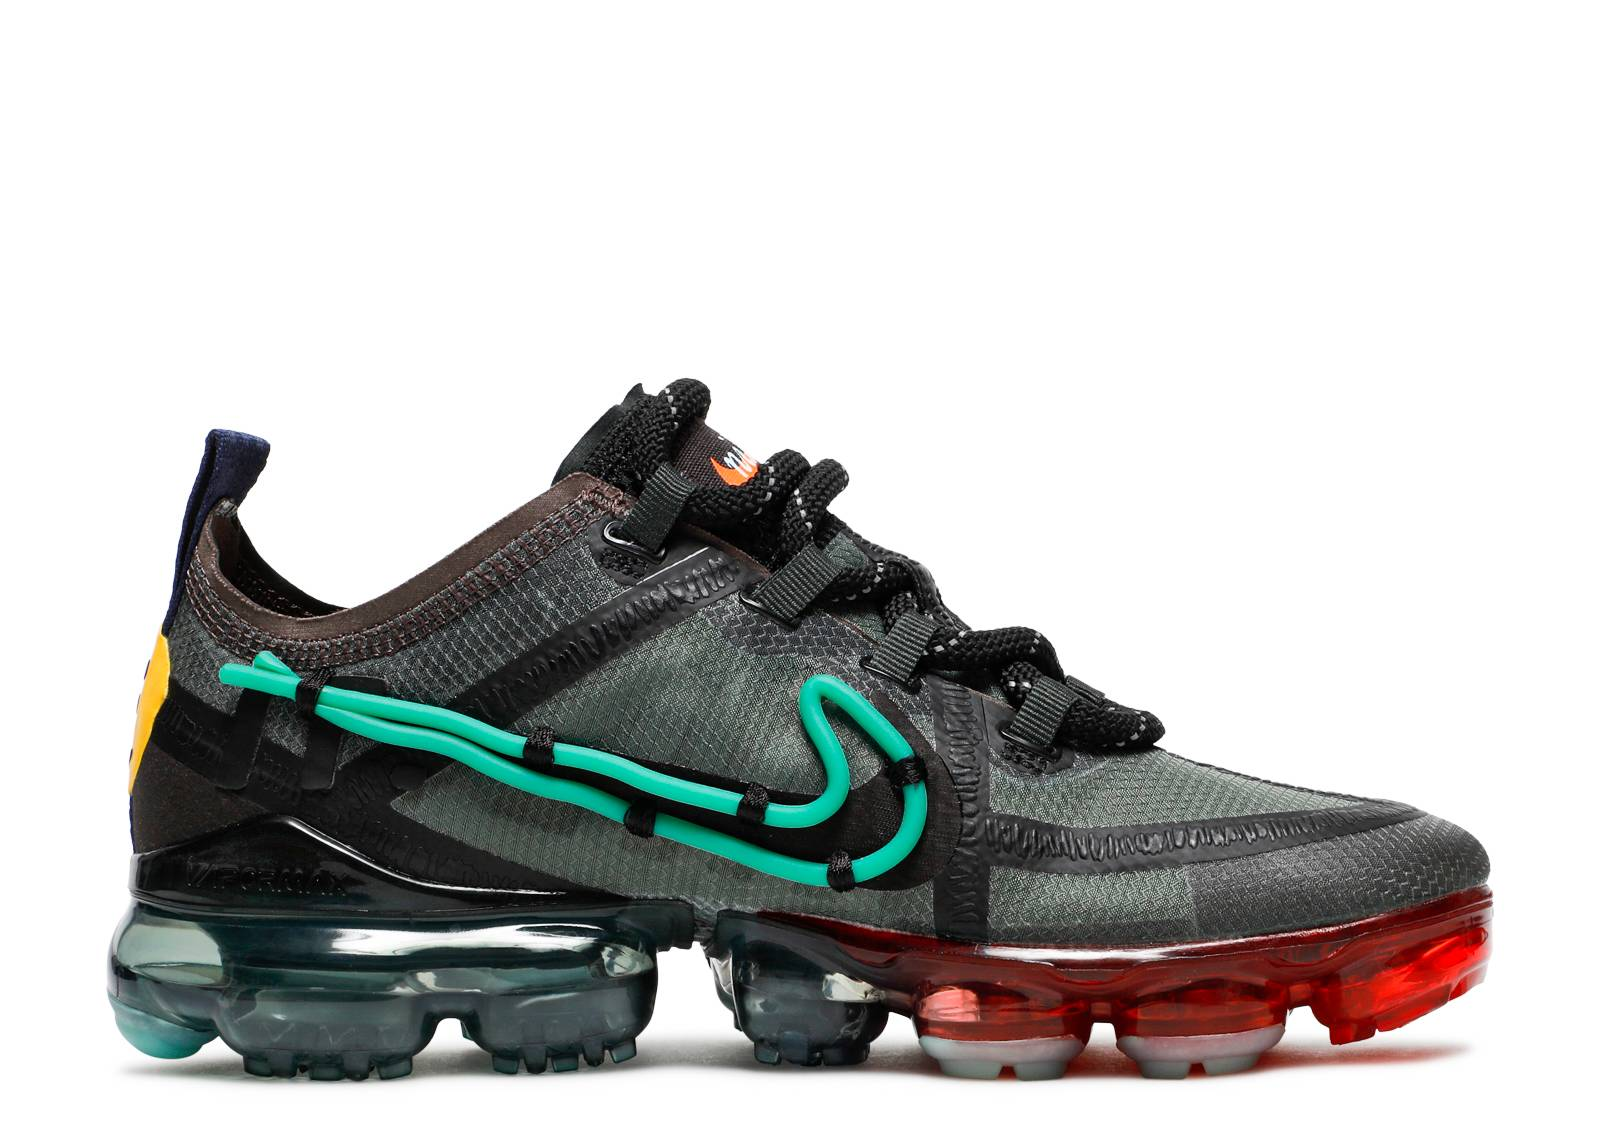 Biblioteca troncal Espolvorear convertible  Cactus Plant Flea Market X Wmns Air VaporMax 2019 - Nike - CD7001 300 -  green mist/light beige chalk | Flight Club